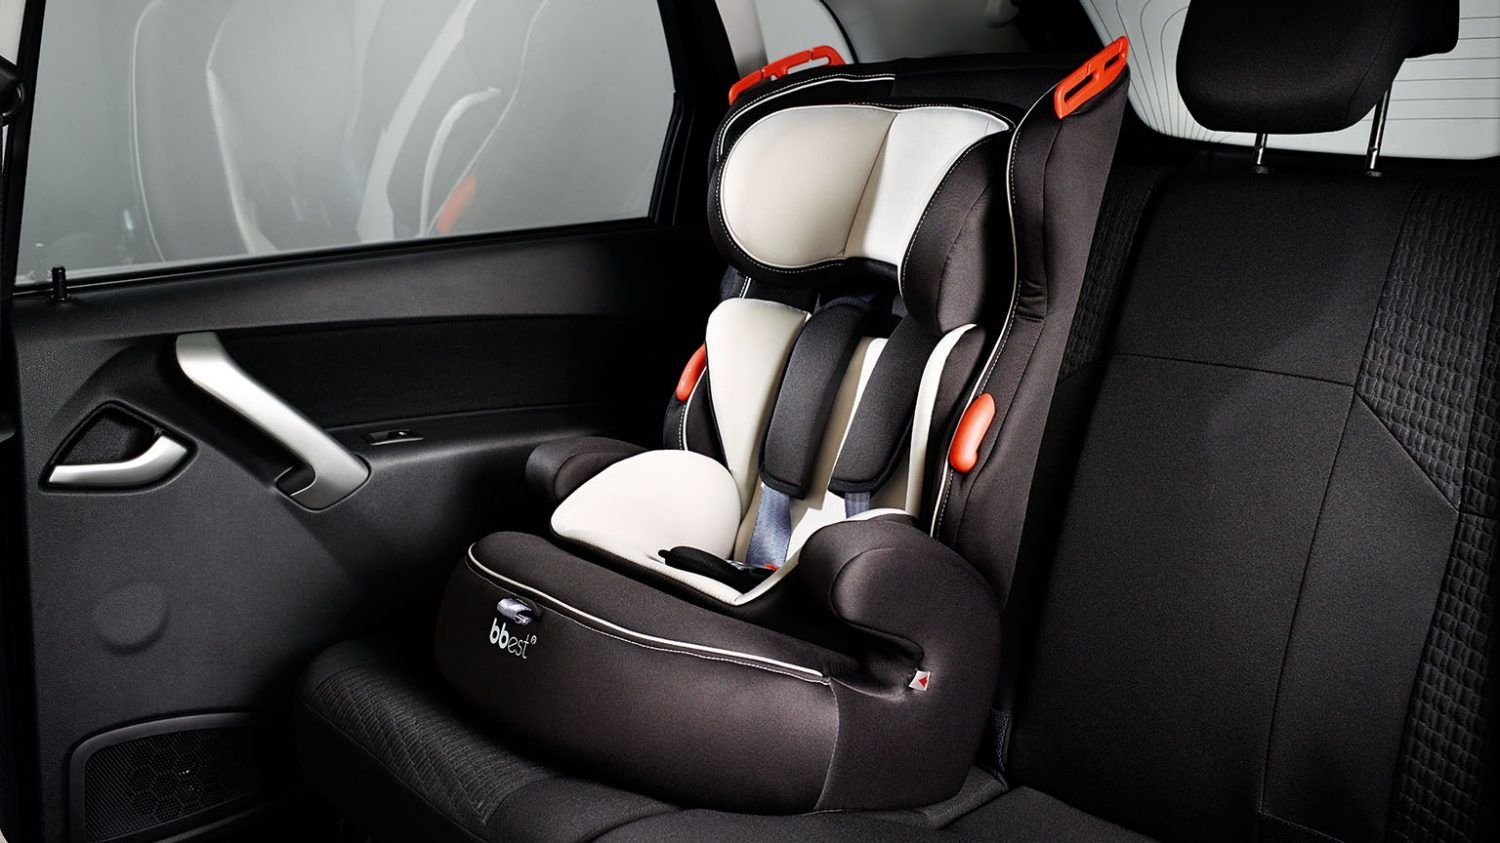 Child Seat Mounted on Seat